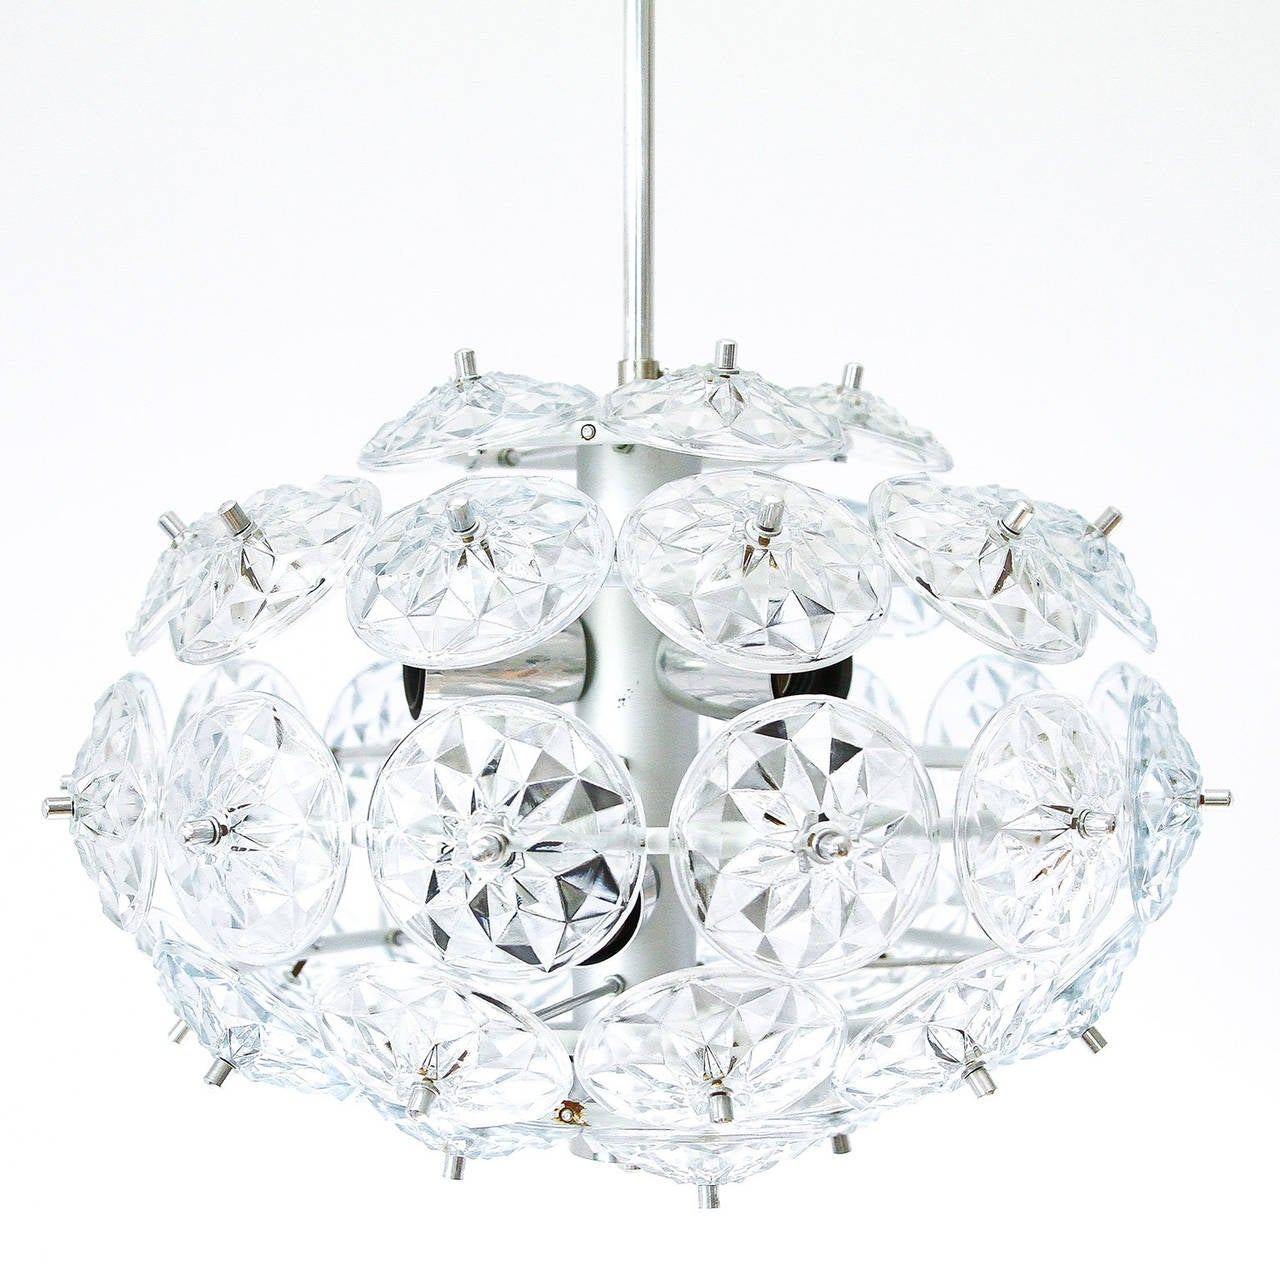 German enameled and chromed glass sputnik chandelier in the style of Kinkeldey, manufactured in Mid-Century.